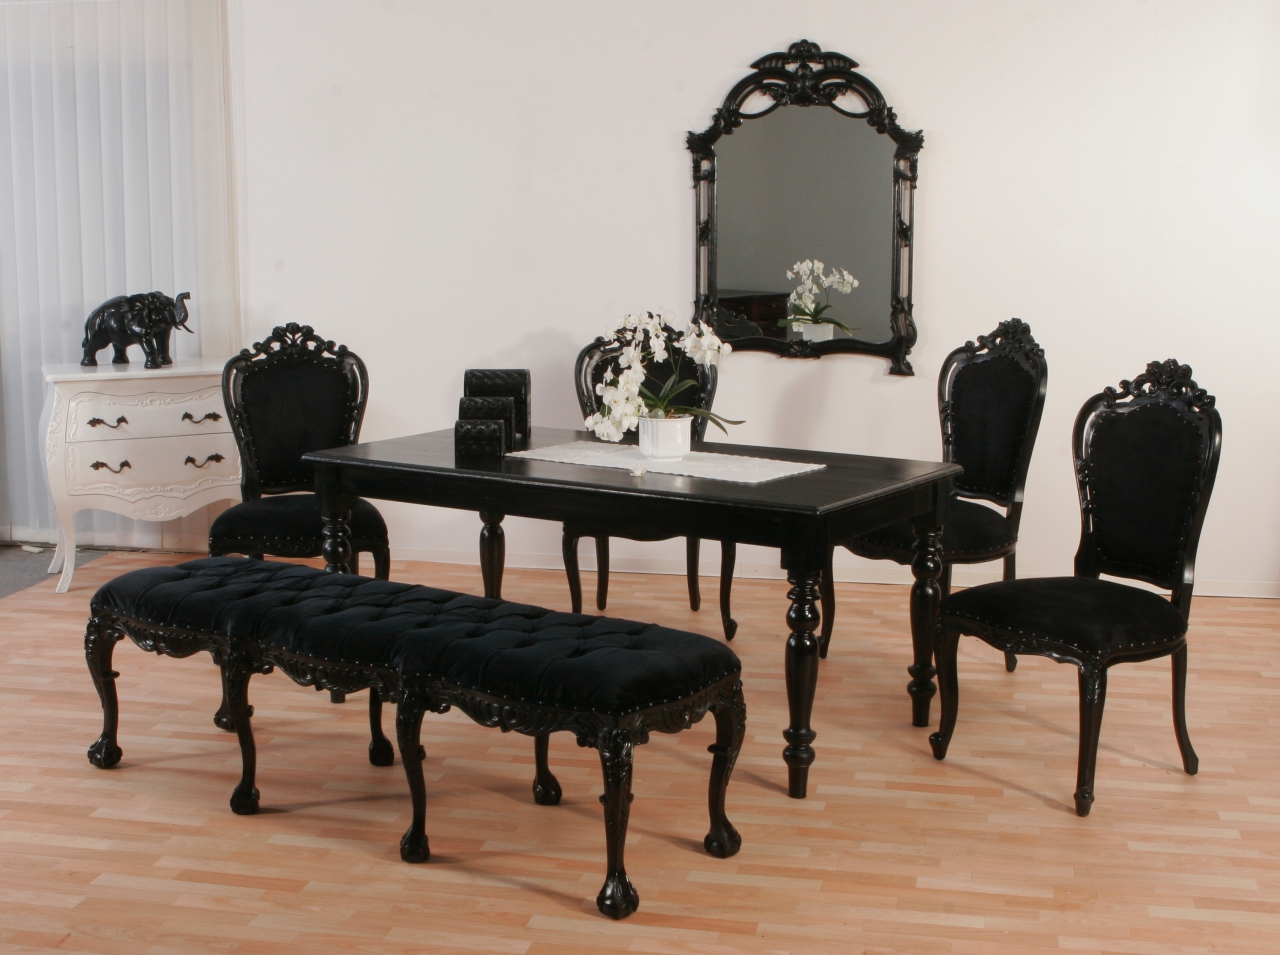 esstisch mit st hlen m bel design idee f r sie. Black Bedroom Furniture Sets. Home Design Ideas